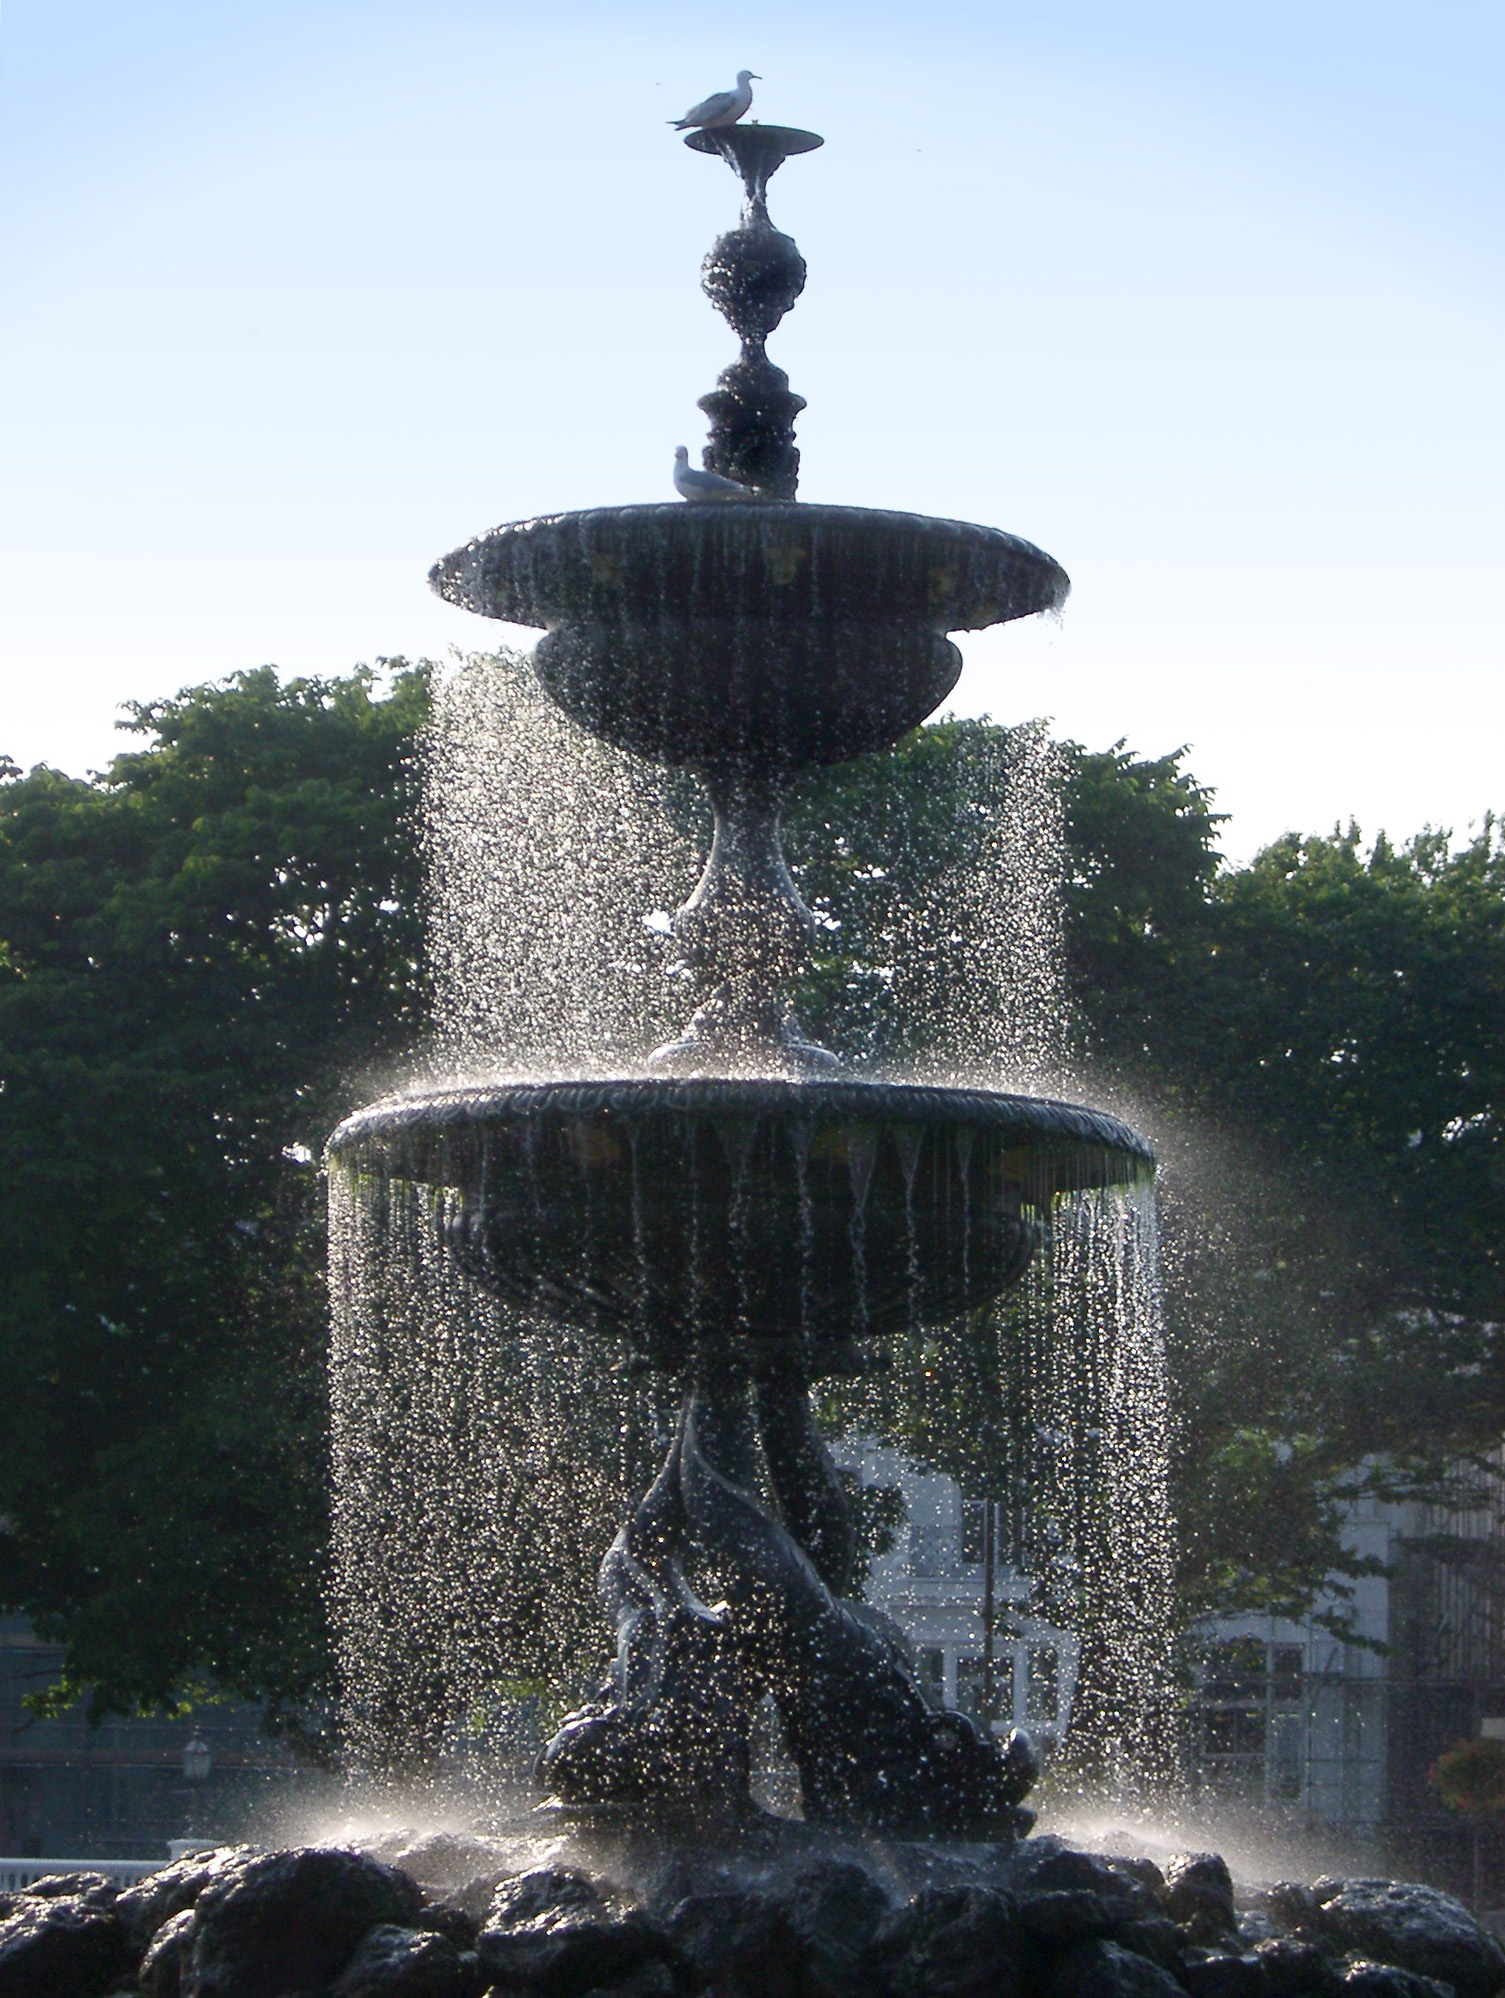 Ornamental Brighton stone fountain with falling curtains of water and pigeons enjoying the cool spray on a hot day